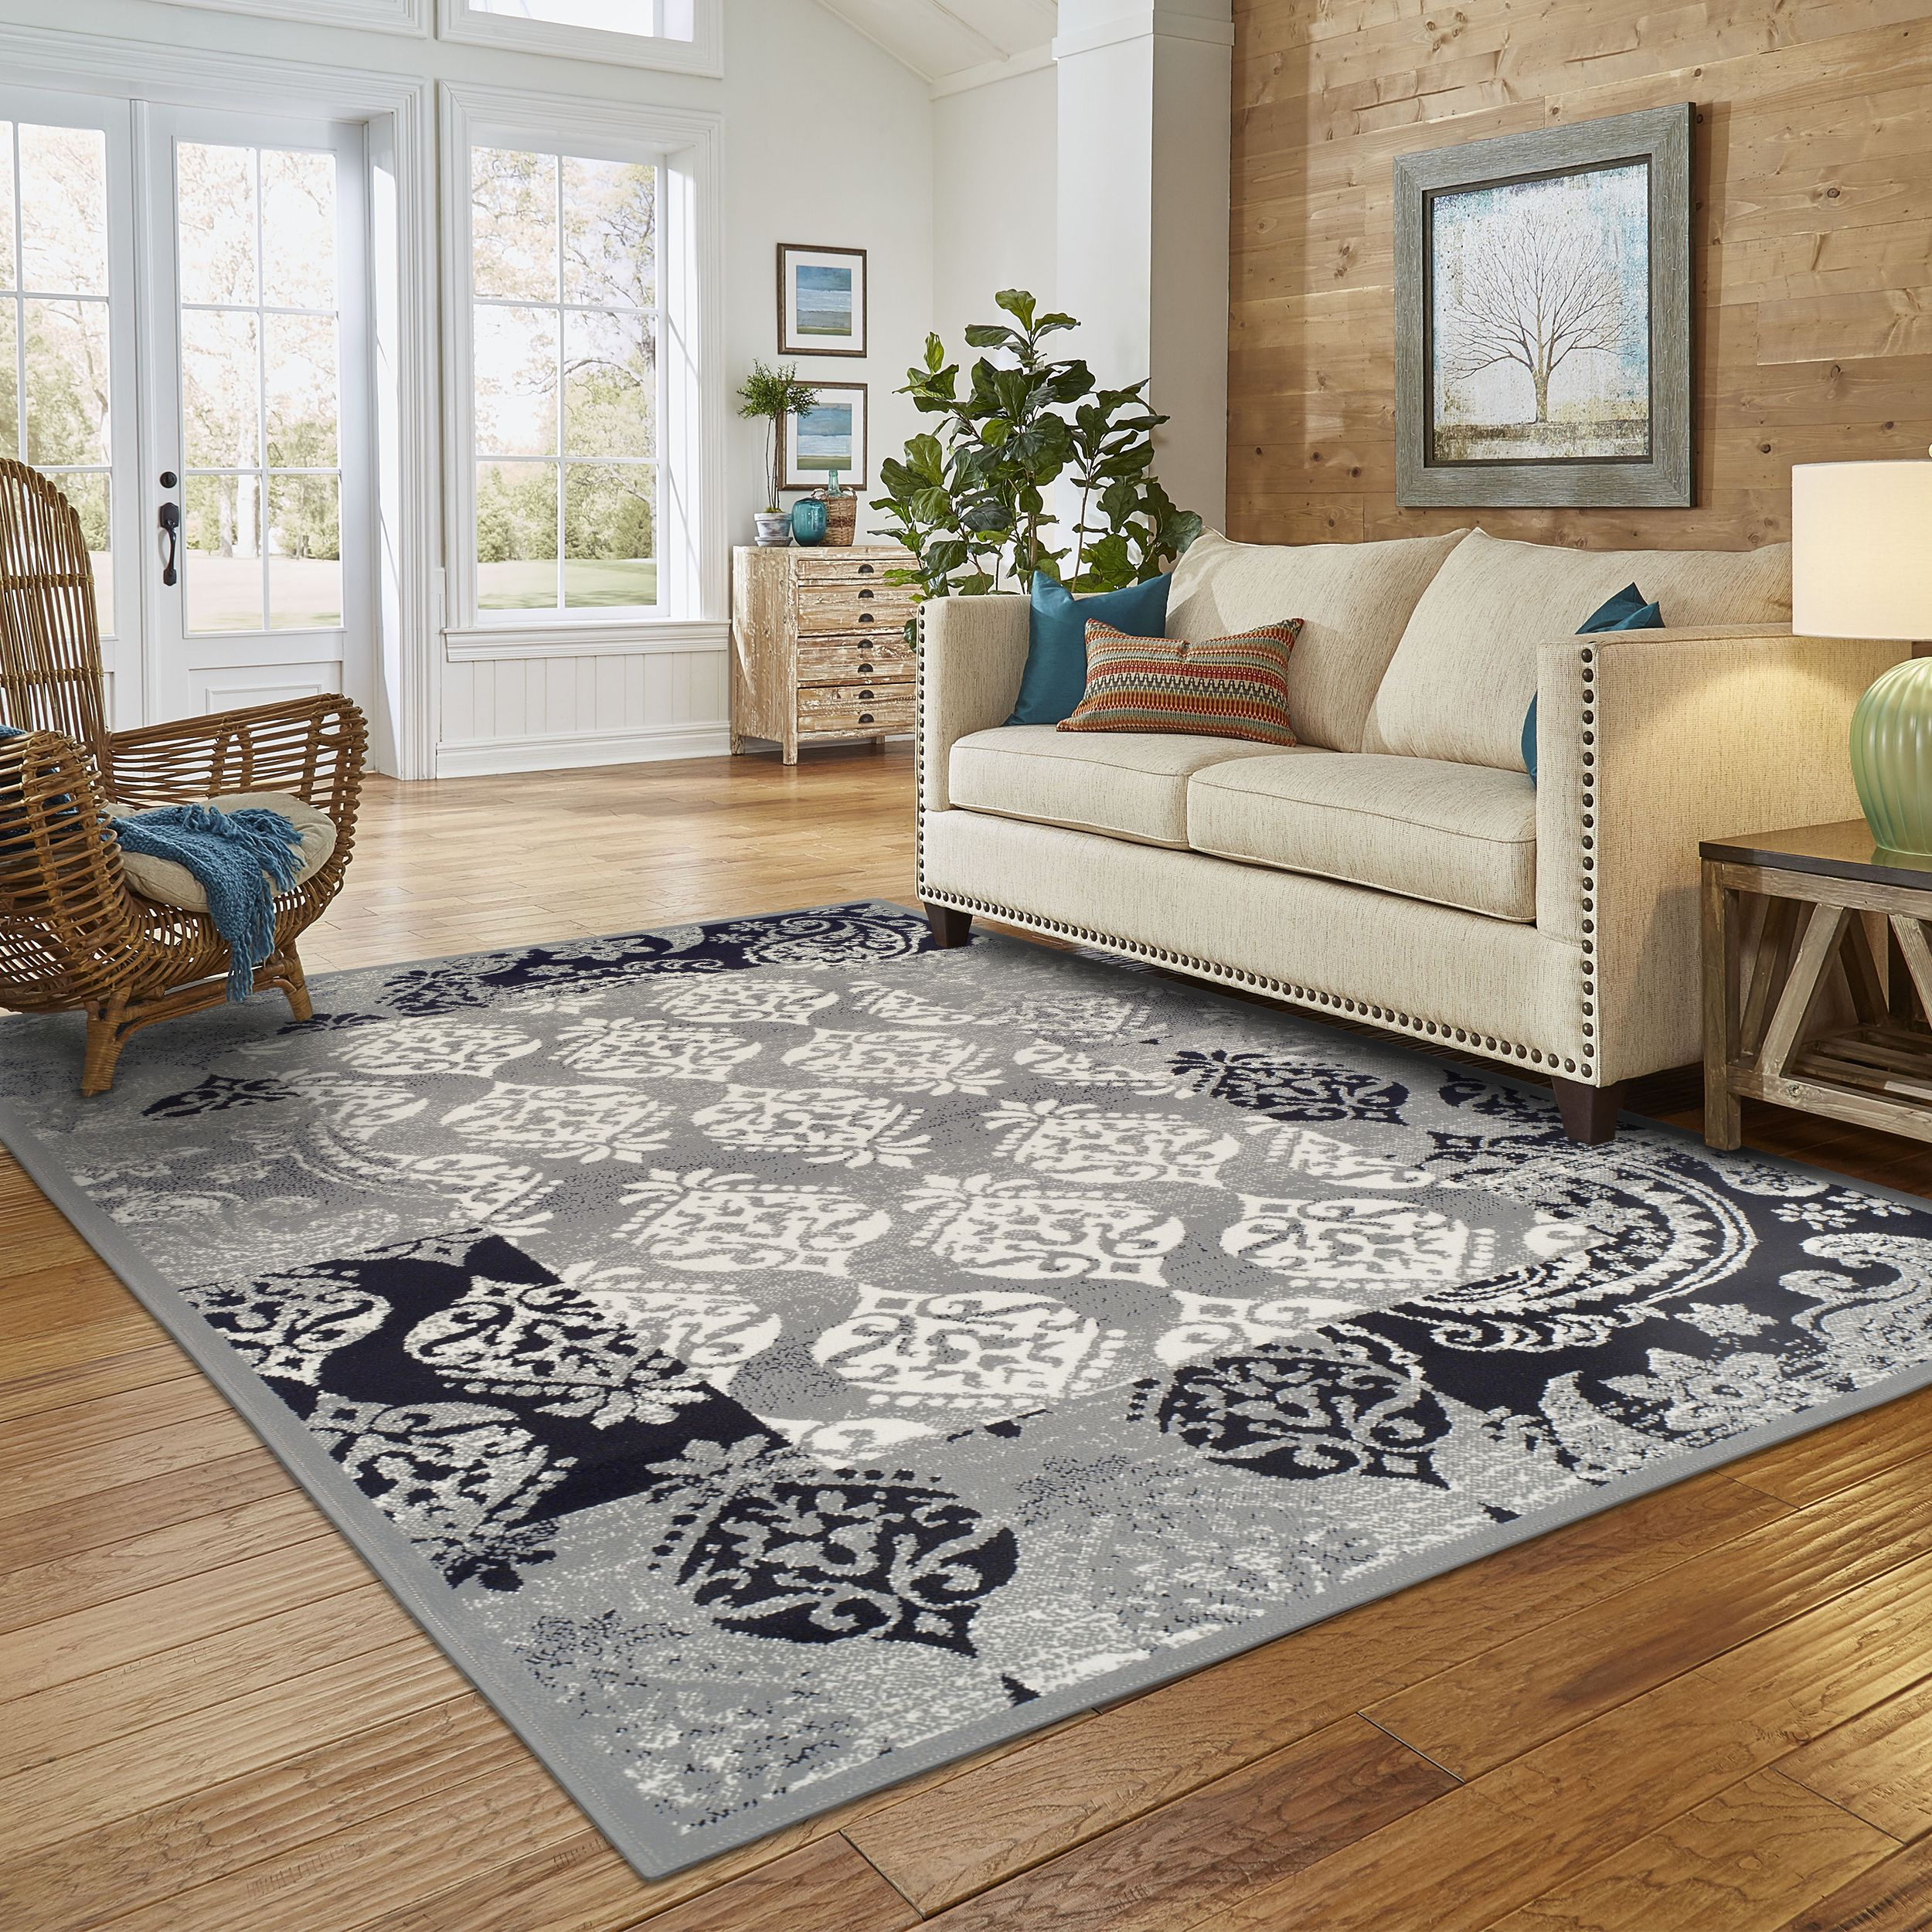 Home With Images Home Decor Area Rugs Black Area Rugs